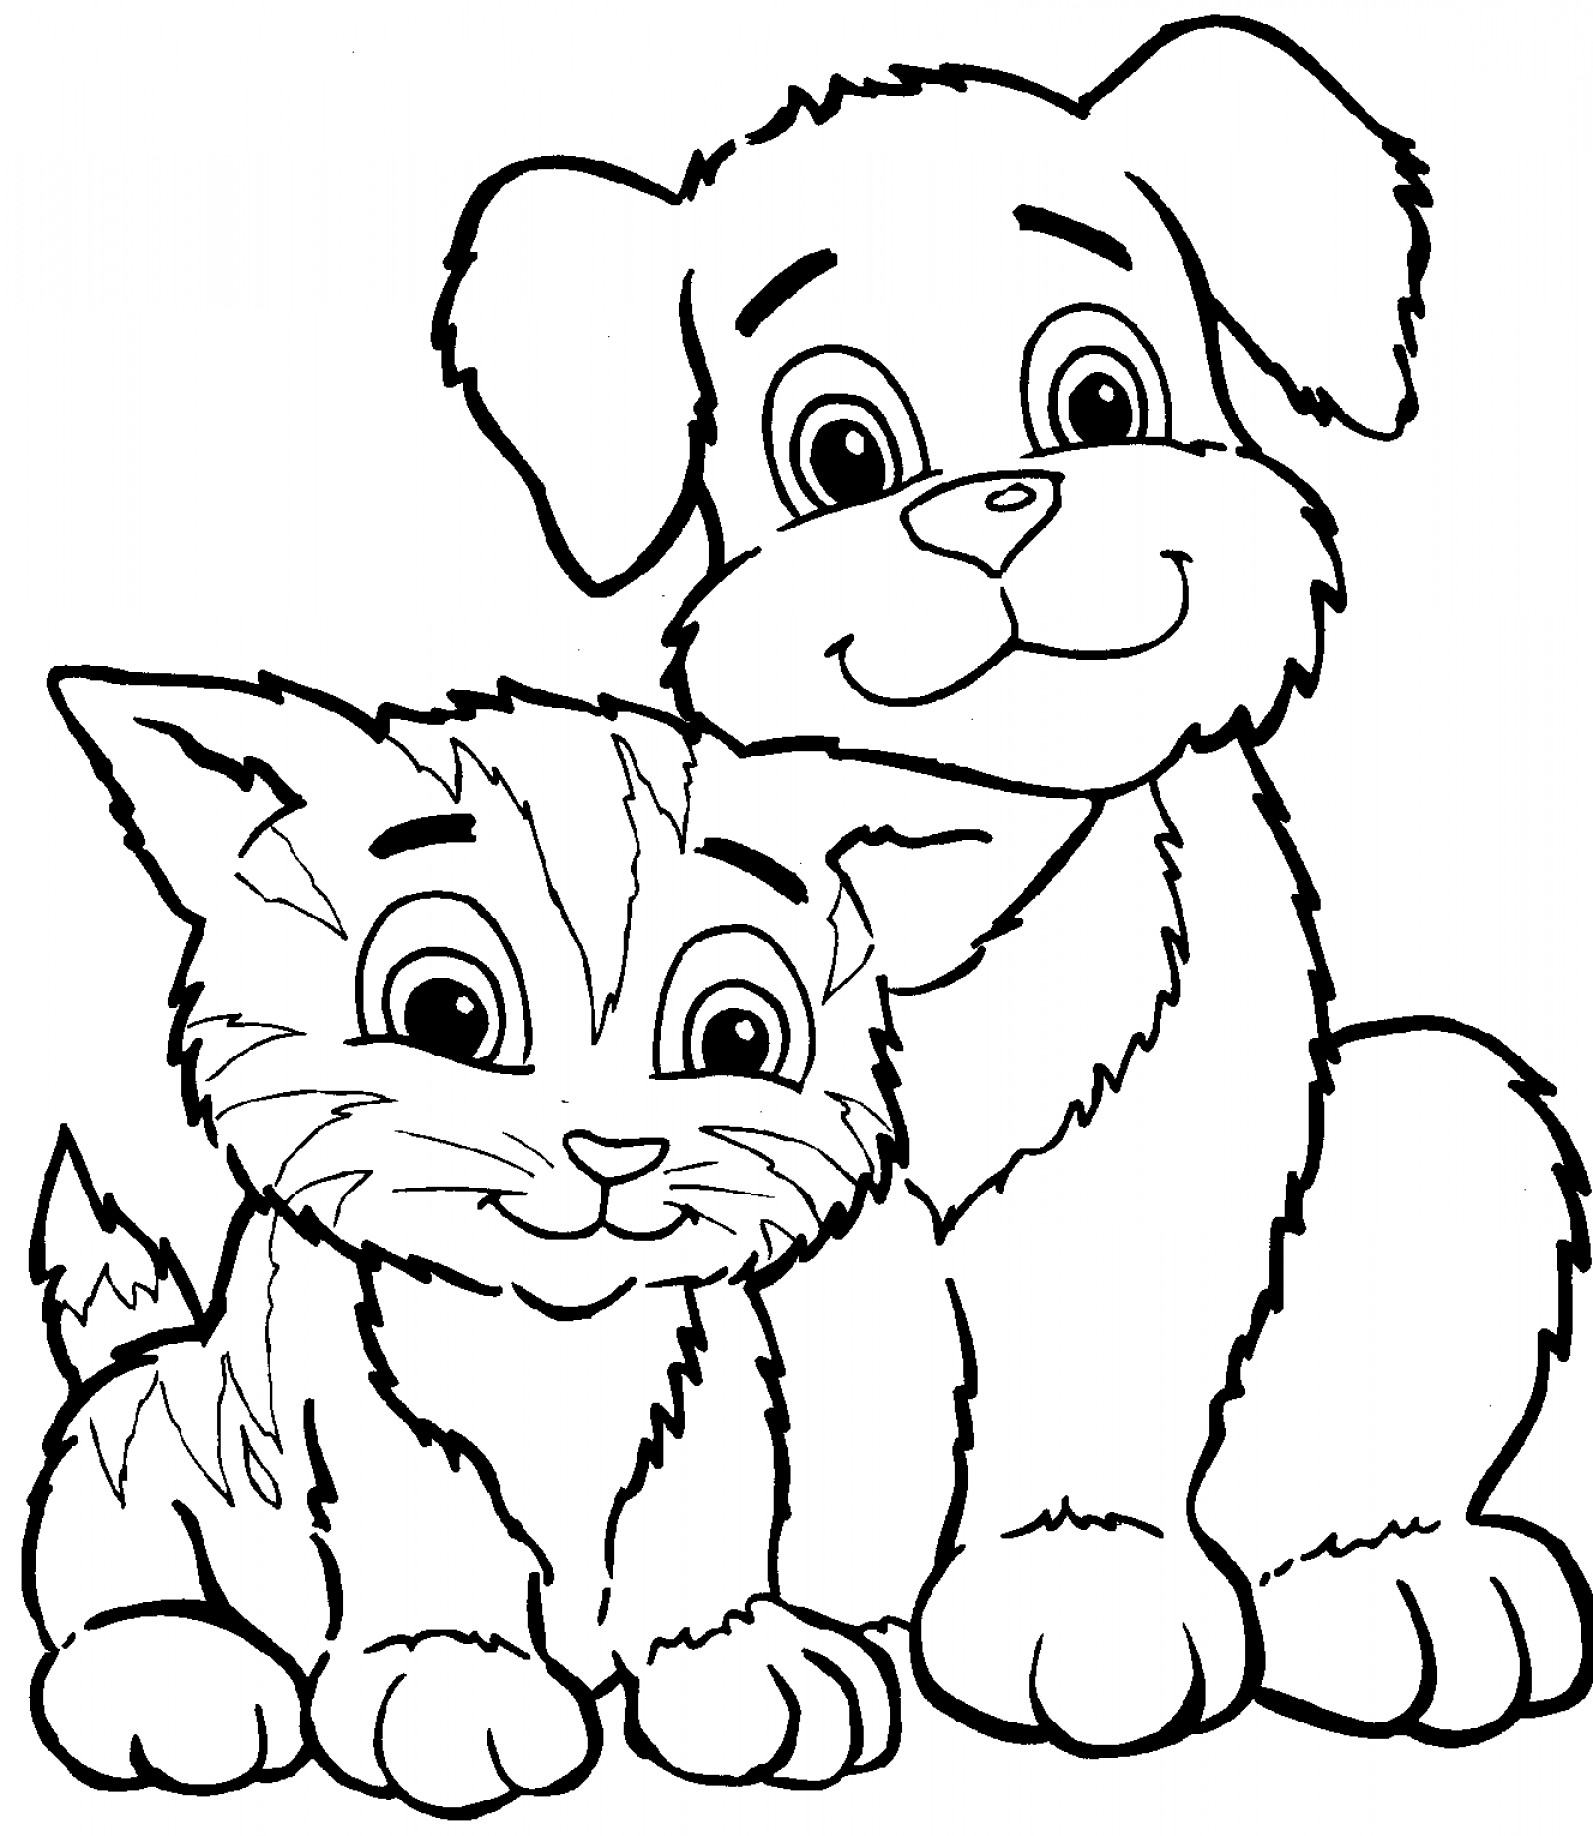 1064 Dog And Cat free clipart.